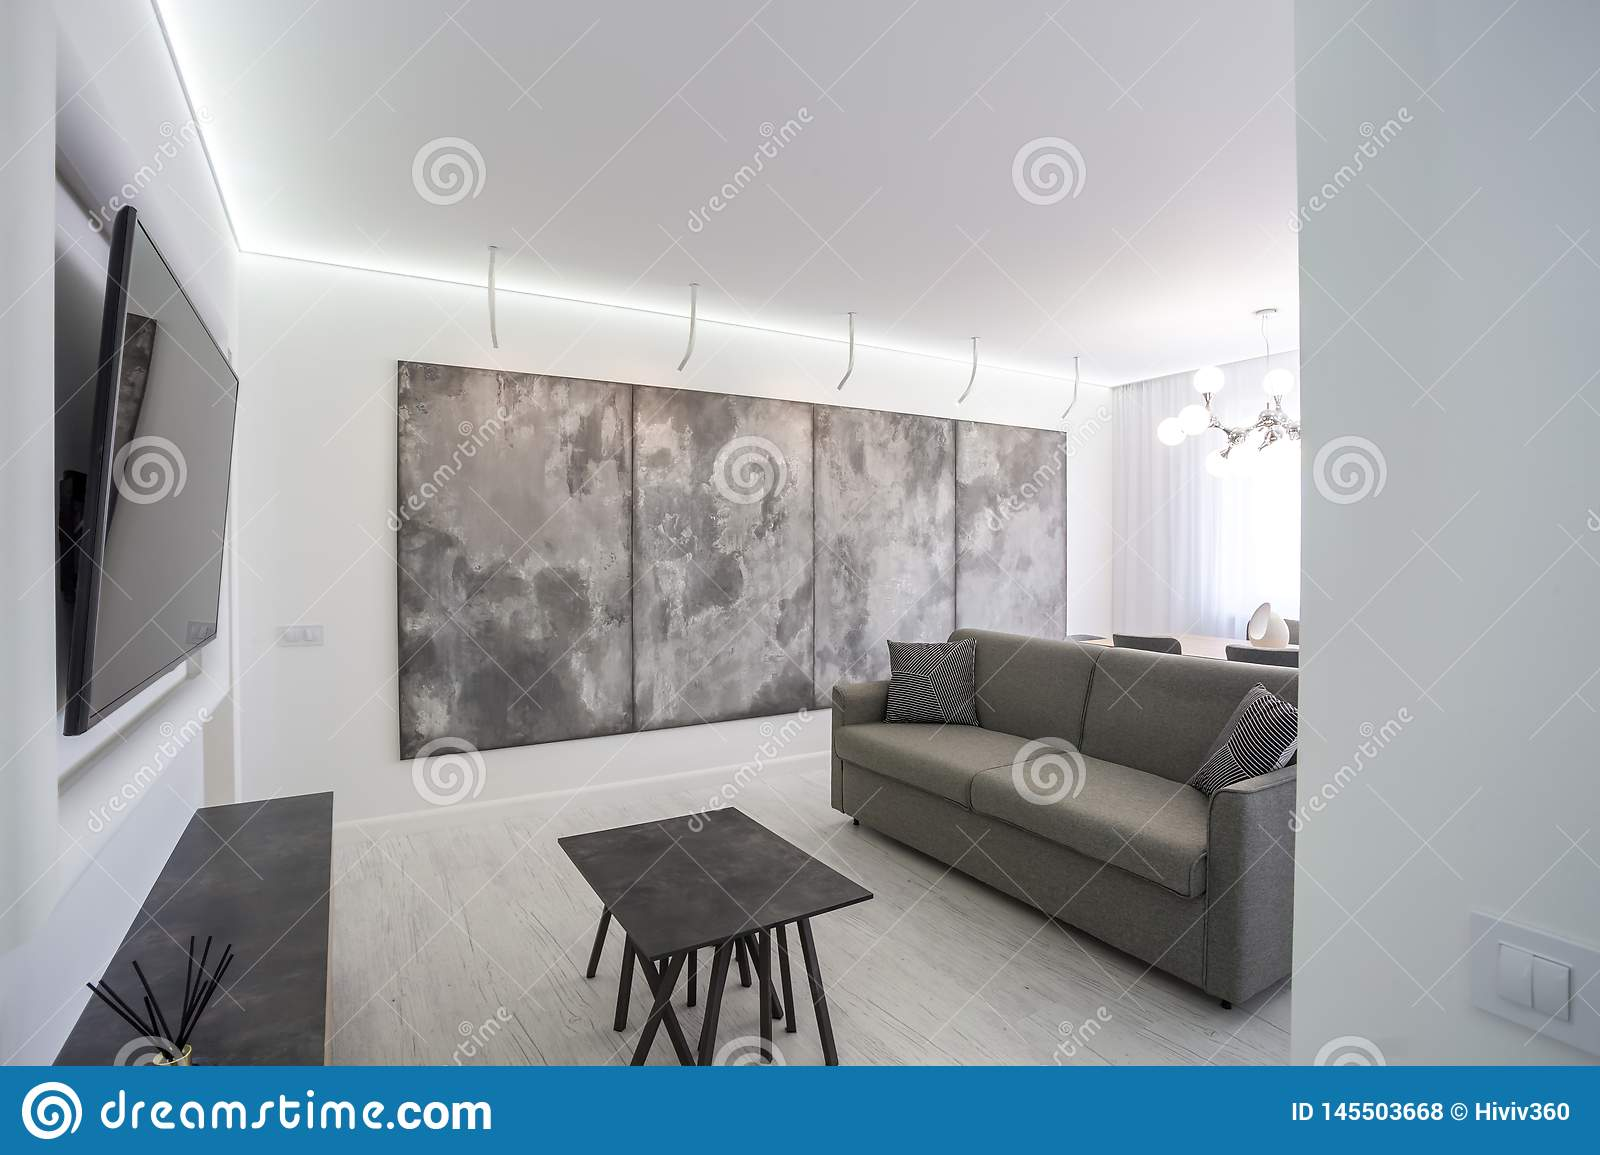 luxure hall interior loft flat in grey style design with sofa